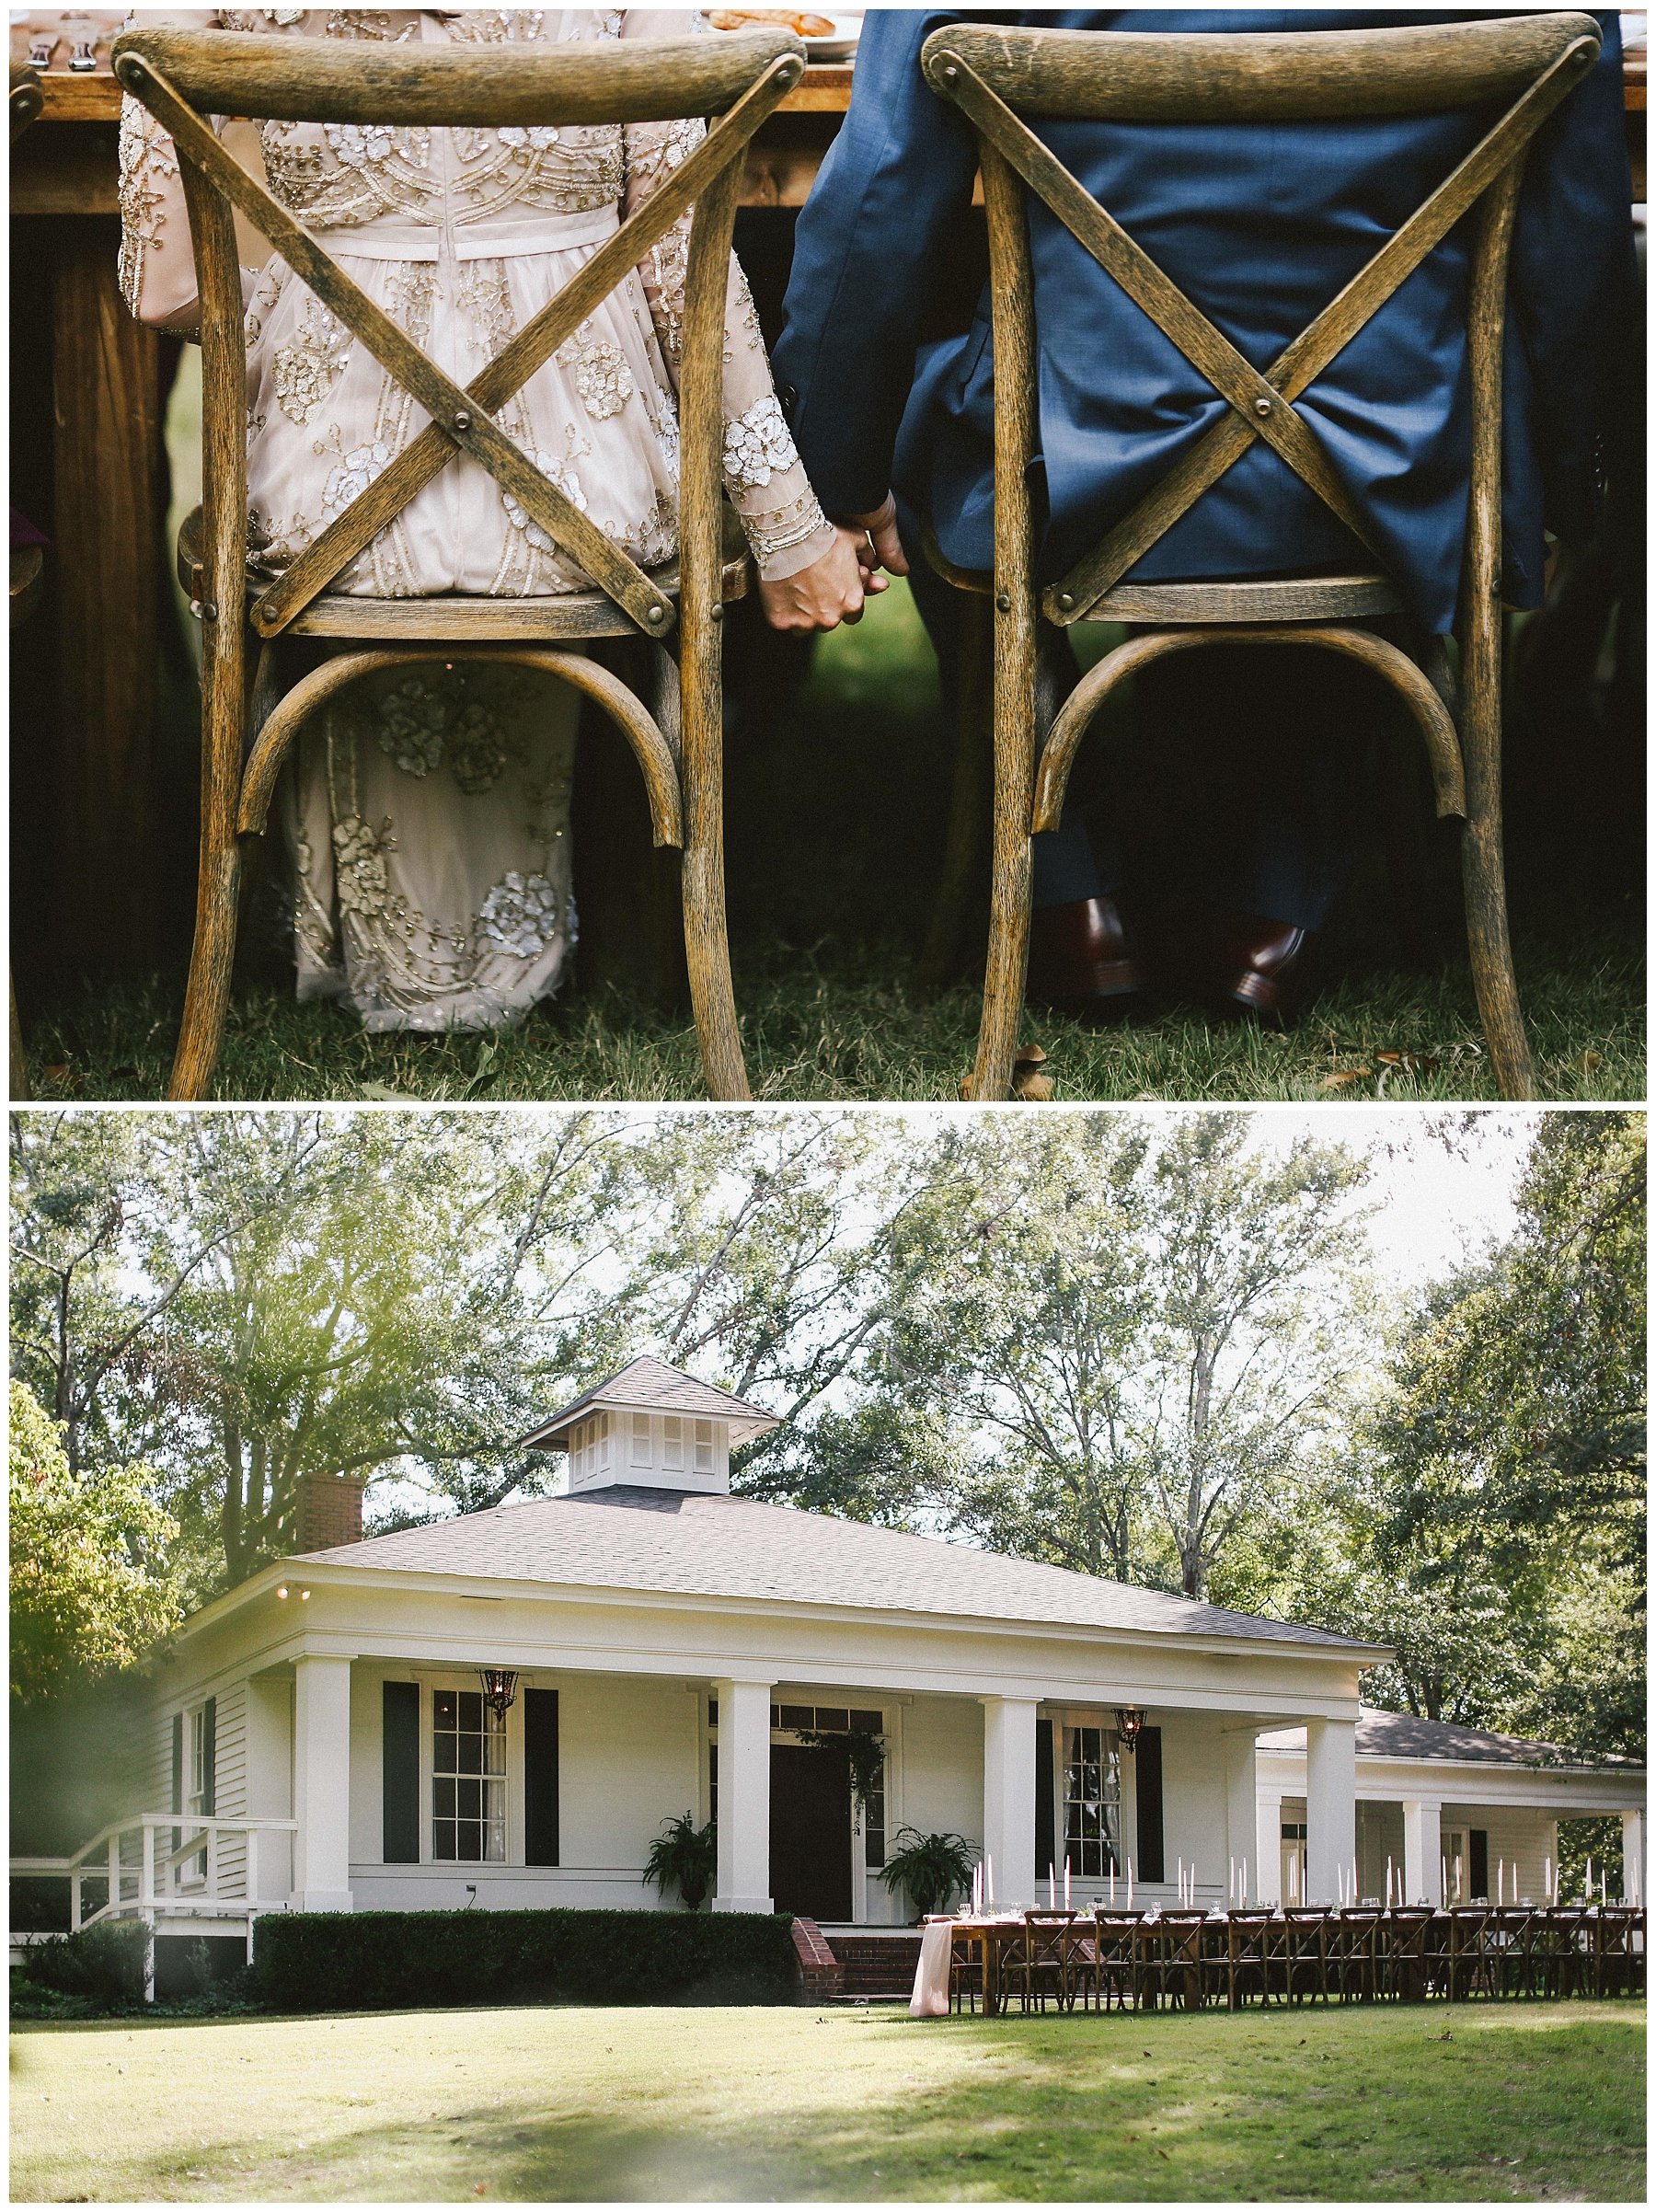 2018-01-30_0001 Christine & Drew: An intimate and meaningful Alabama Wedding Blog Invision Events Weddings    invision_events, birmingham_al, auburn_al, alabama, atlanta_ga, atl, georgia, wedding_planner, wedding_designer, weddings, photography, wedding_planning